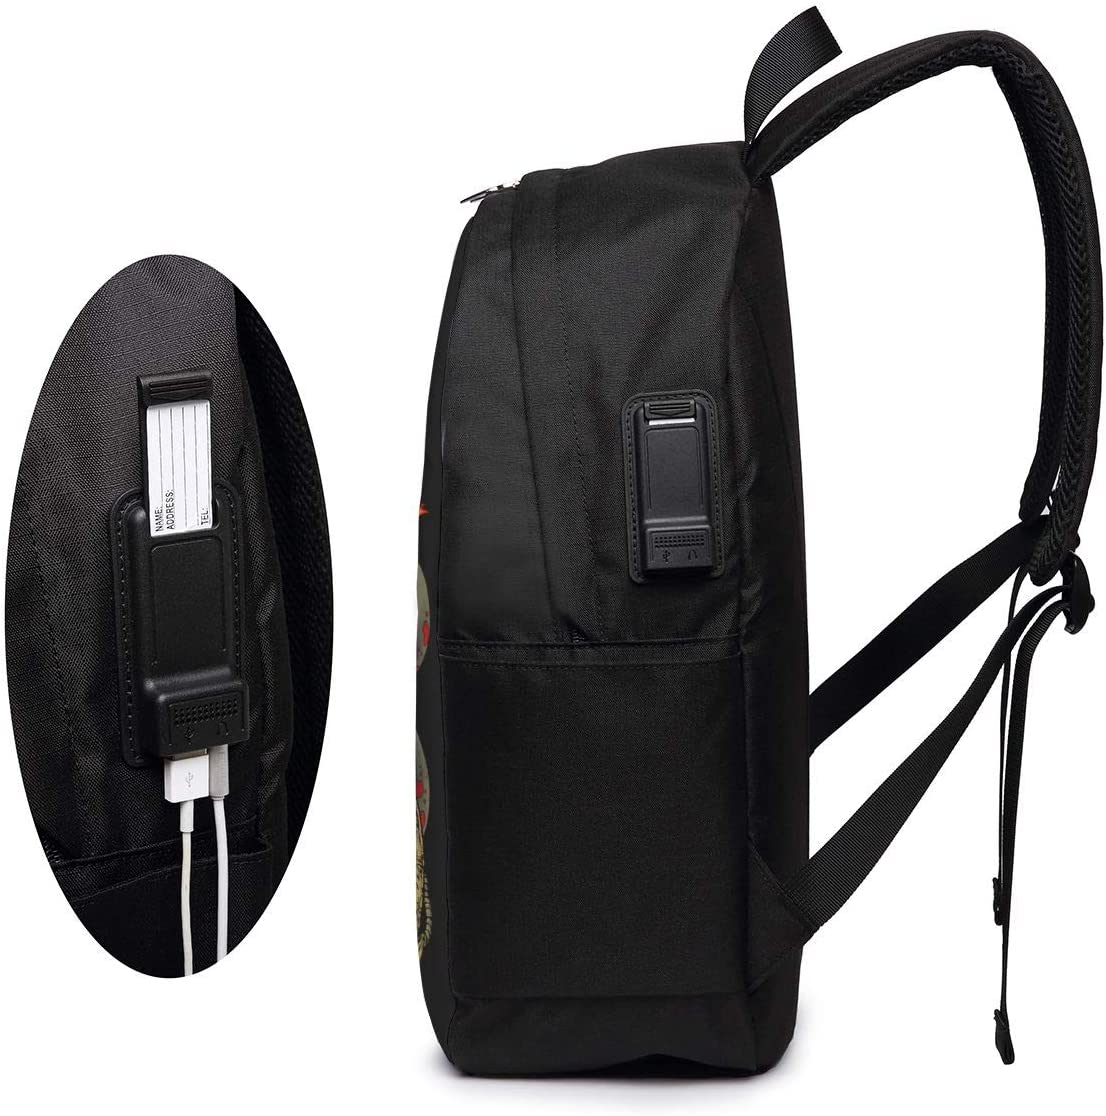 Suicide Silence School Backpack 17-Inch Bag with USB Charging Port /& Headphone Port Black